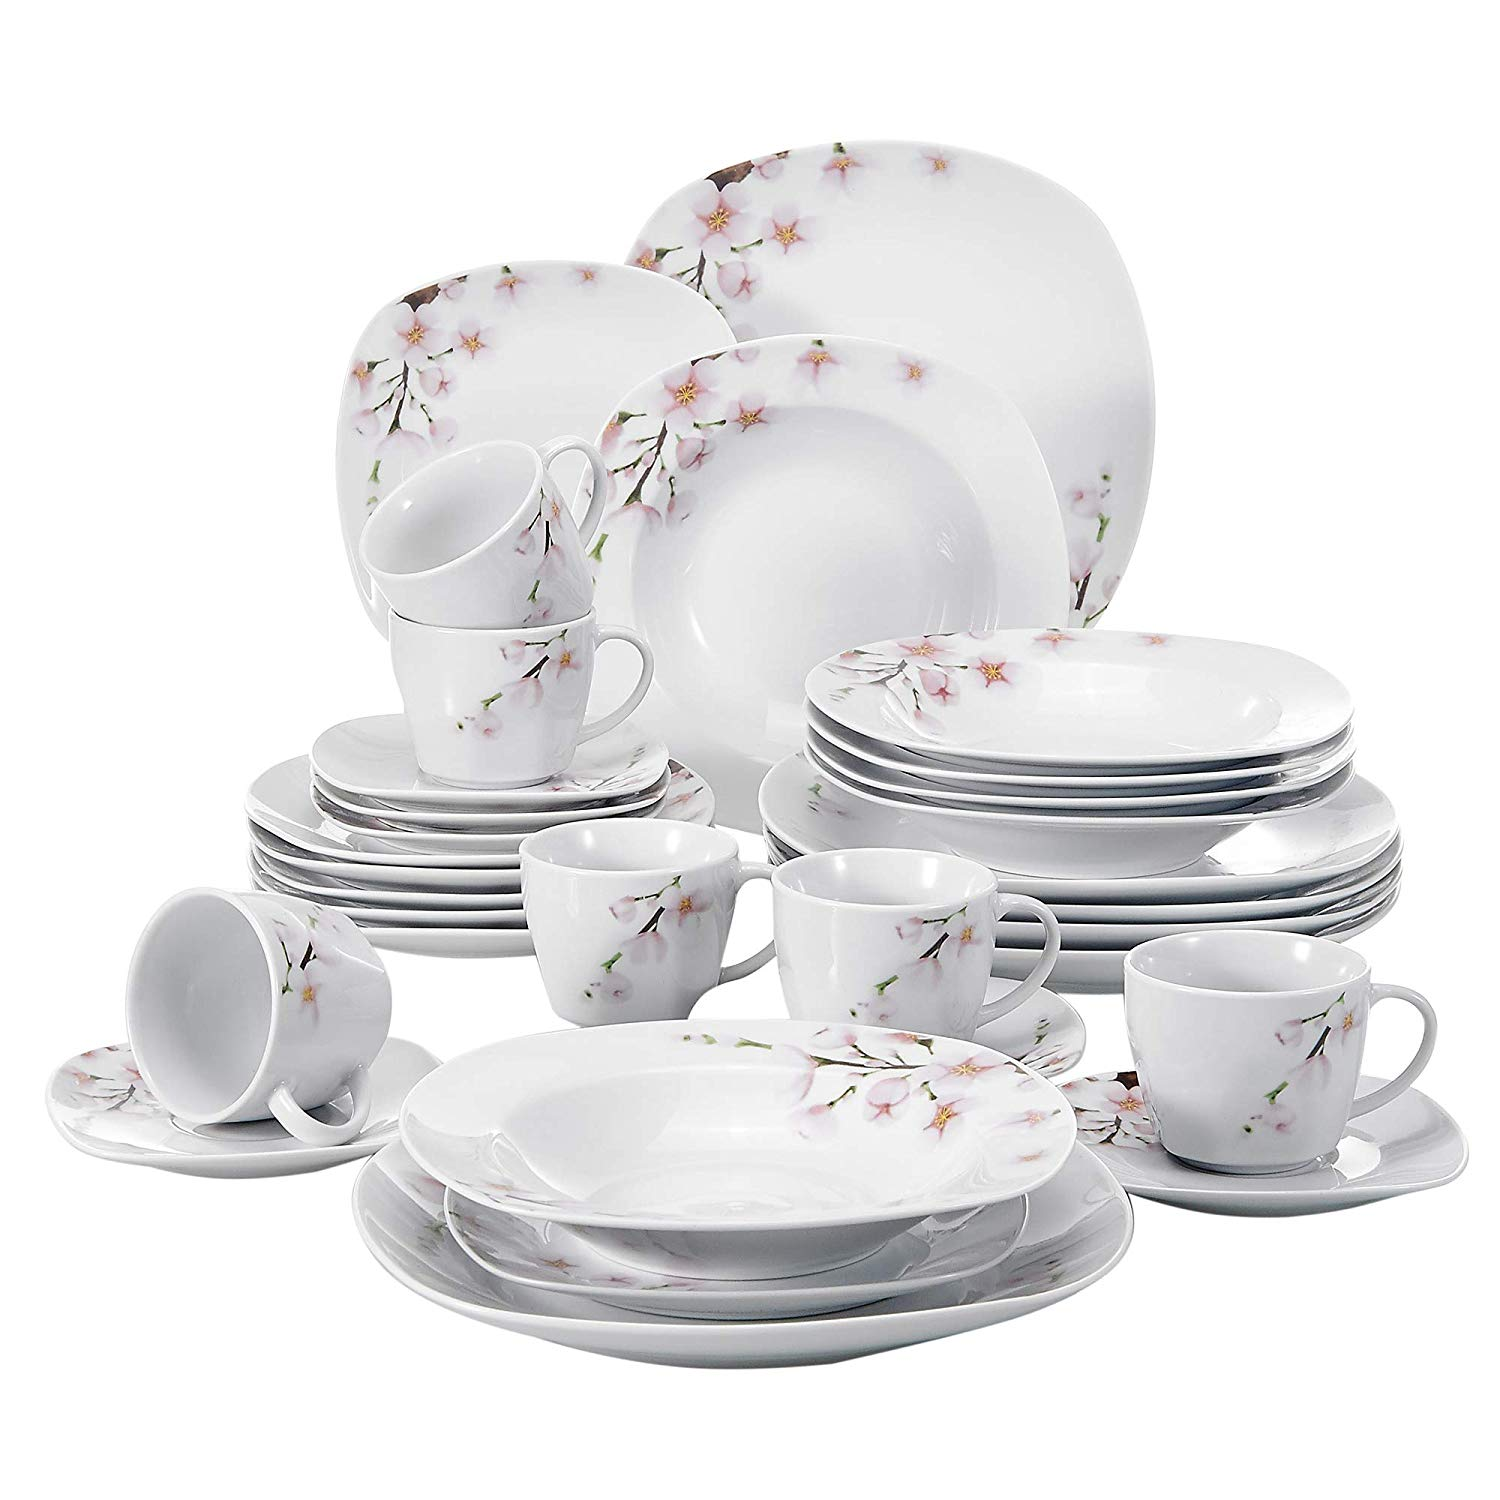 VEWEET <font><b>ANNIE</b></font> <font><b>30</b></font>-Piece White Ceramic Pink Floral Porcelain Plate Set with Dinner Plate,Soup Plate,Dessert Plate,Cups and Saucers image